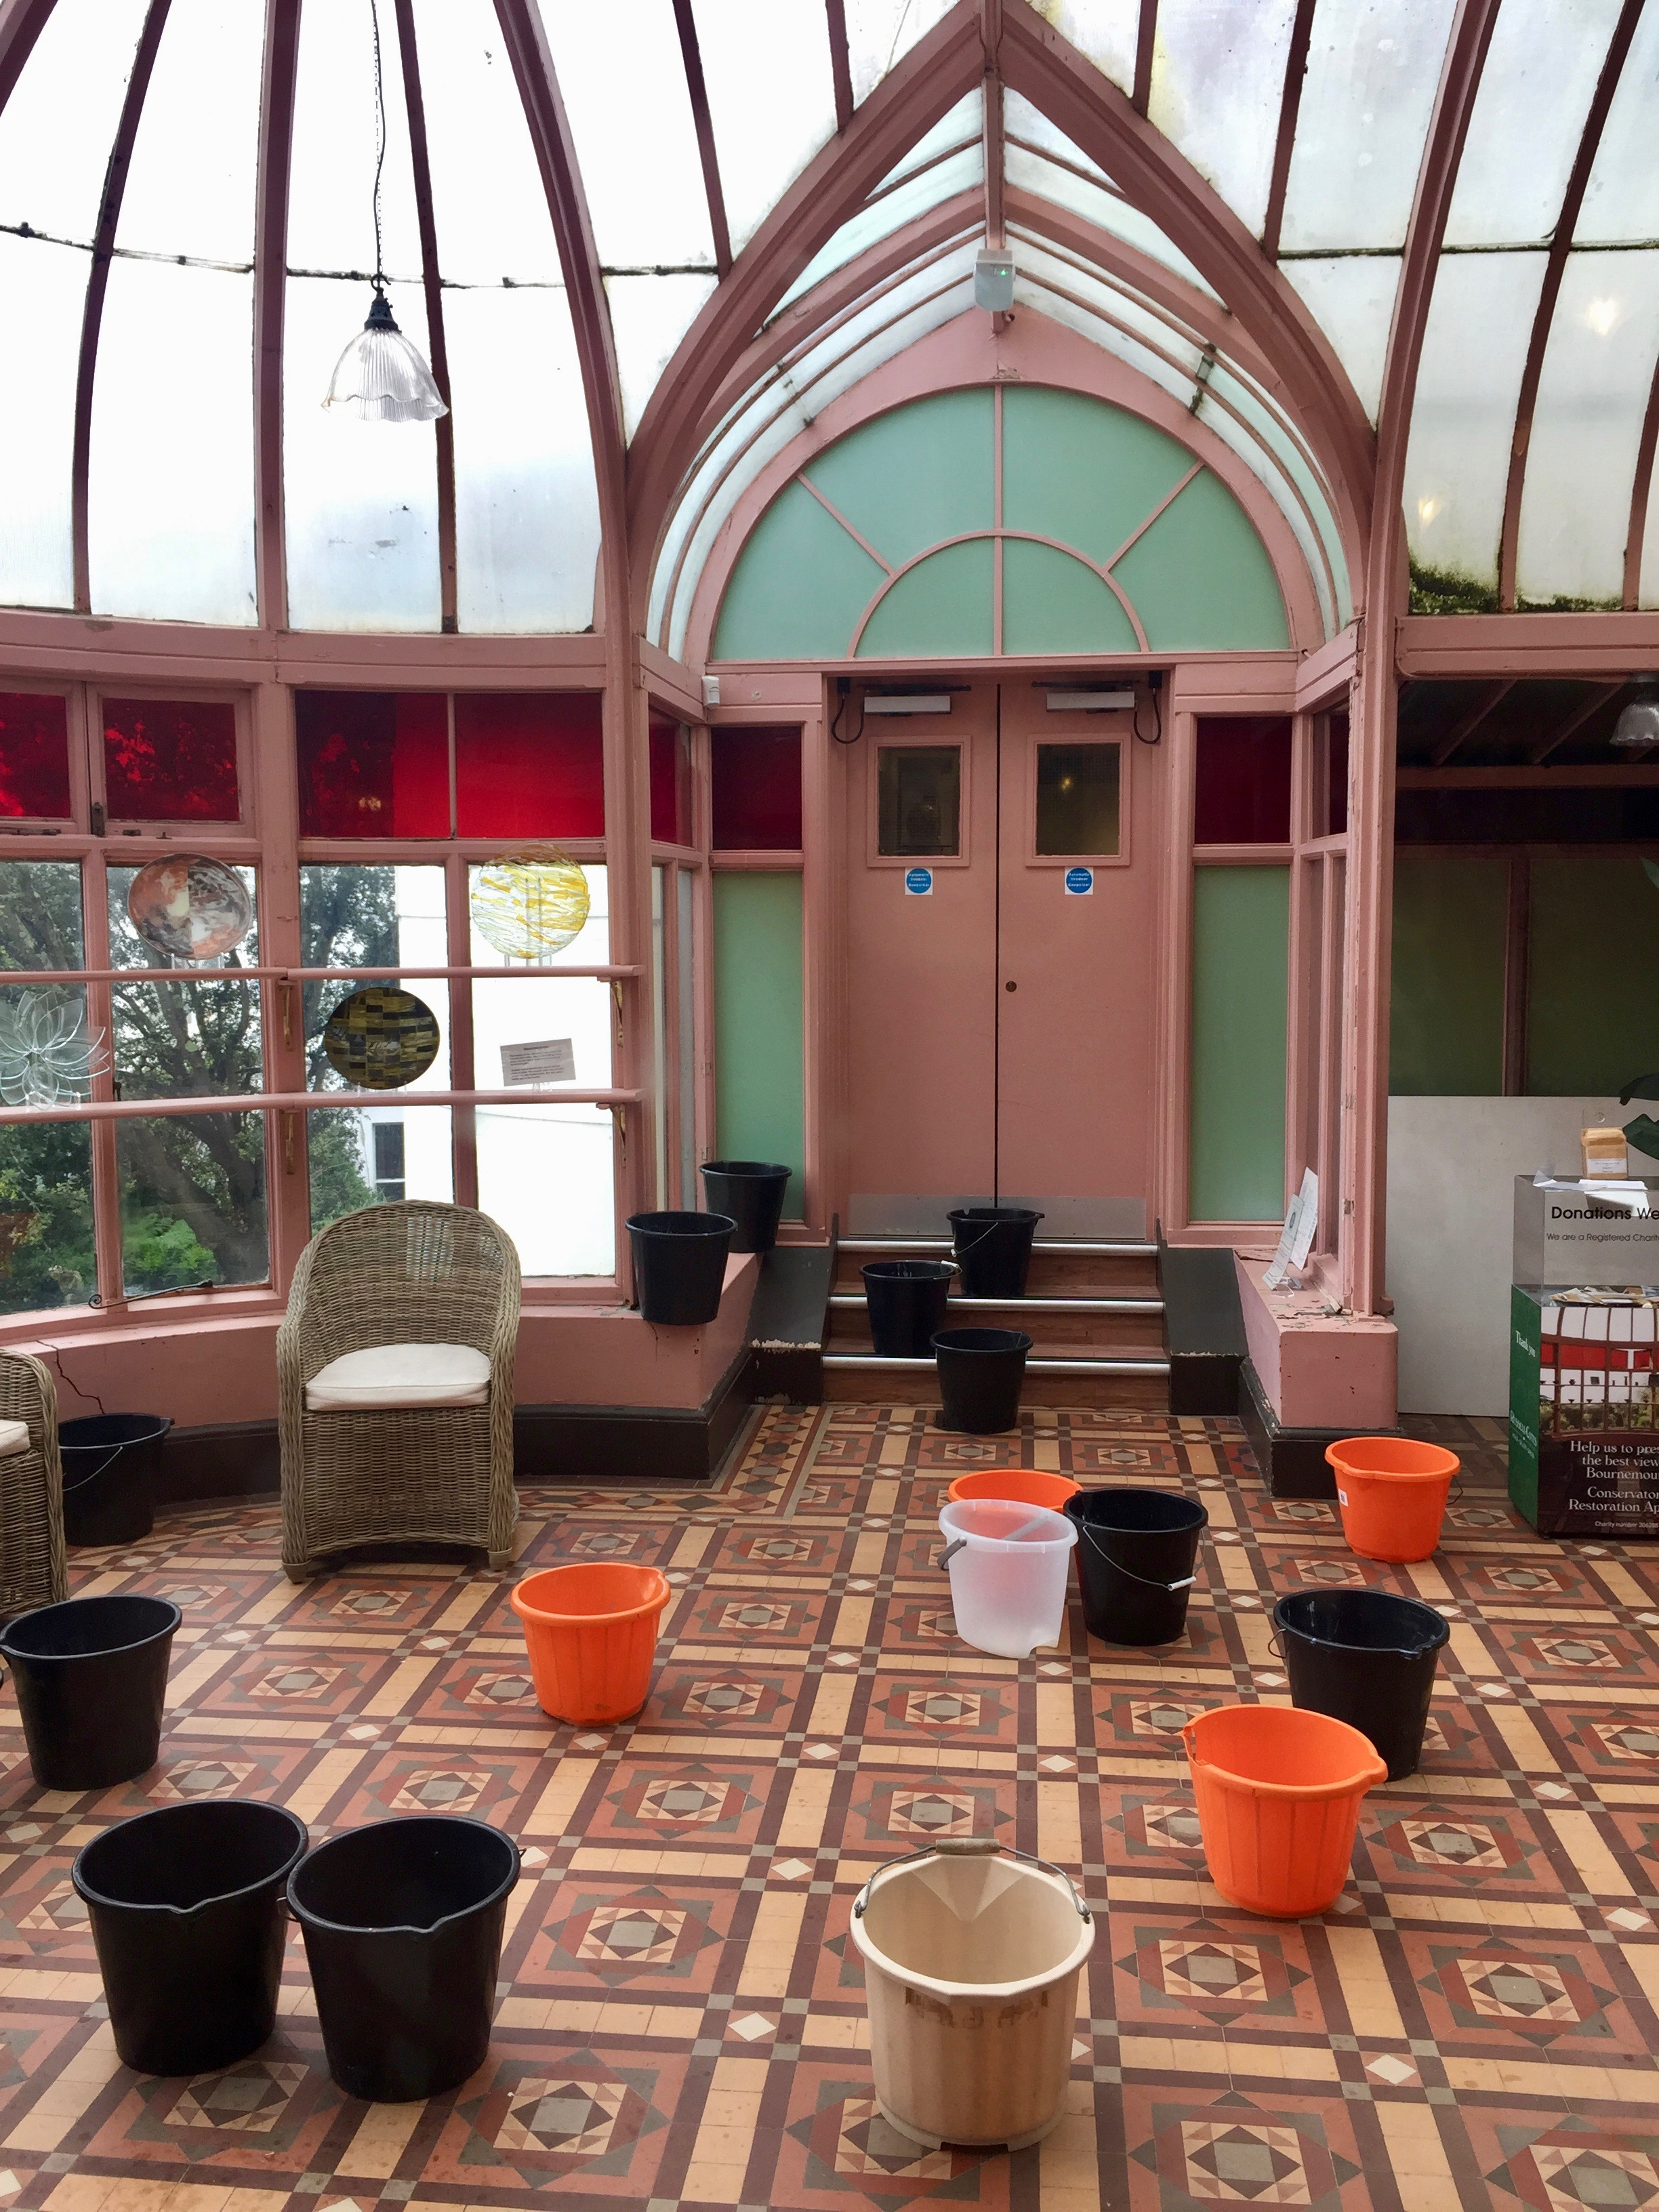 The Russell-Cotes Museum needs all the help it can get to renovate its beautiful buildings.